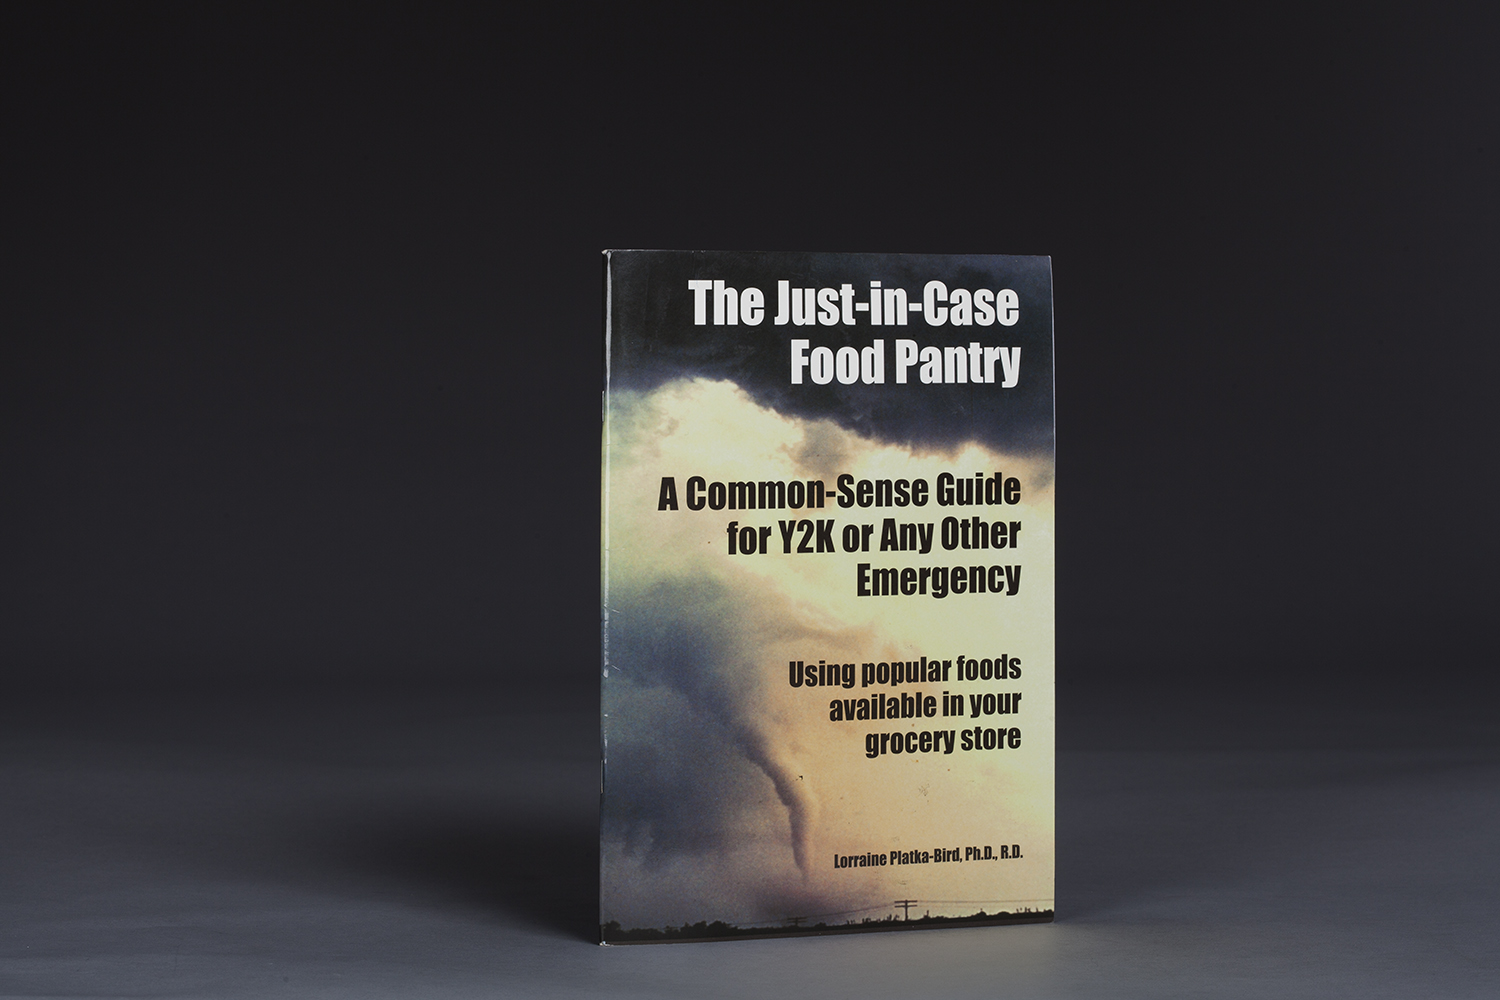 The Just-in-Case Food Pantry - A Common-Sense Guide for Y2K - 0702 Cover.jpg